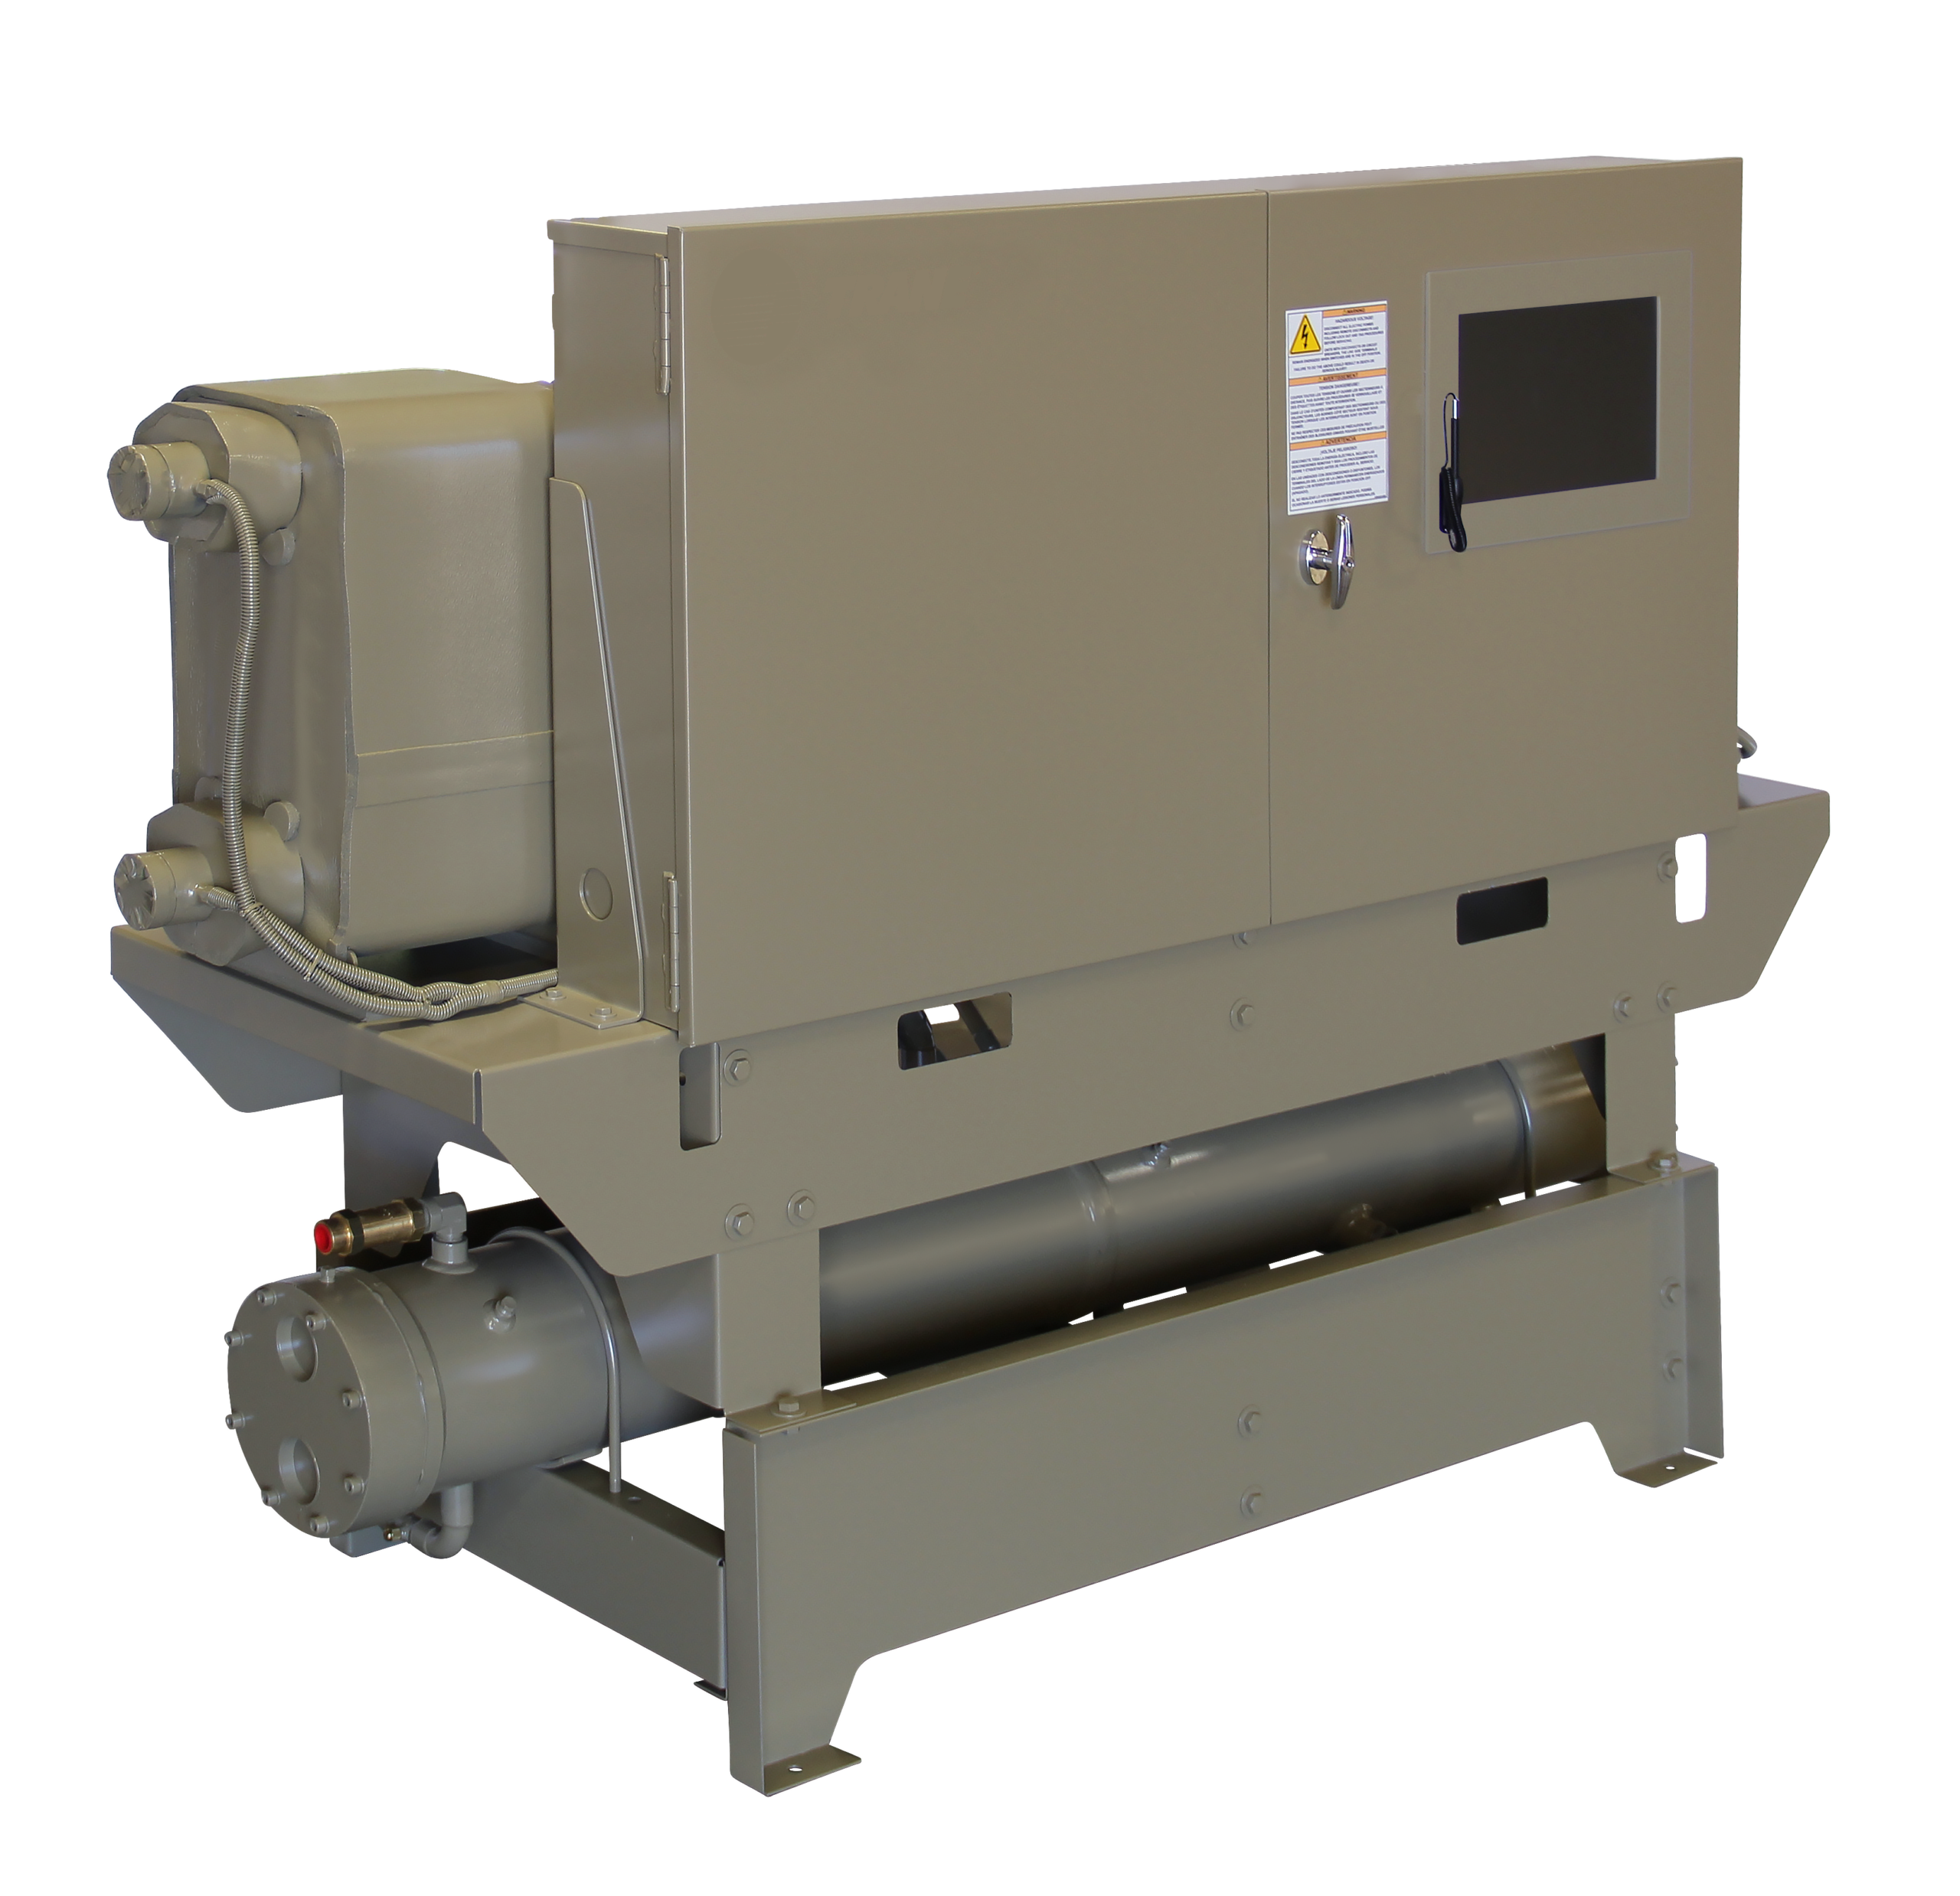 NWCR-Scroll-Water-Cooled-Chillers